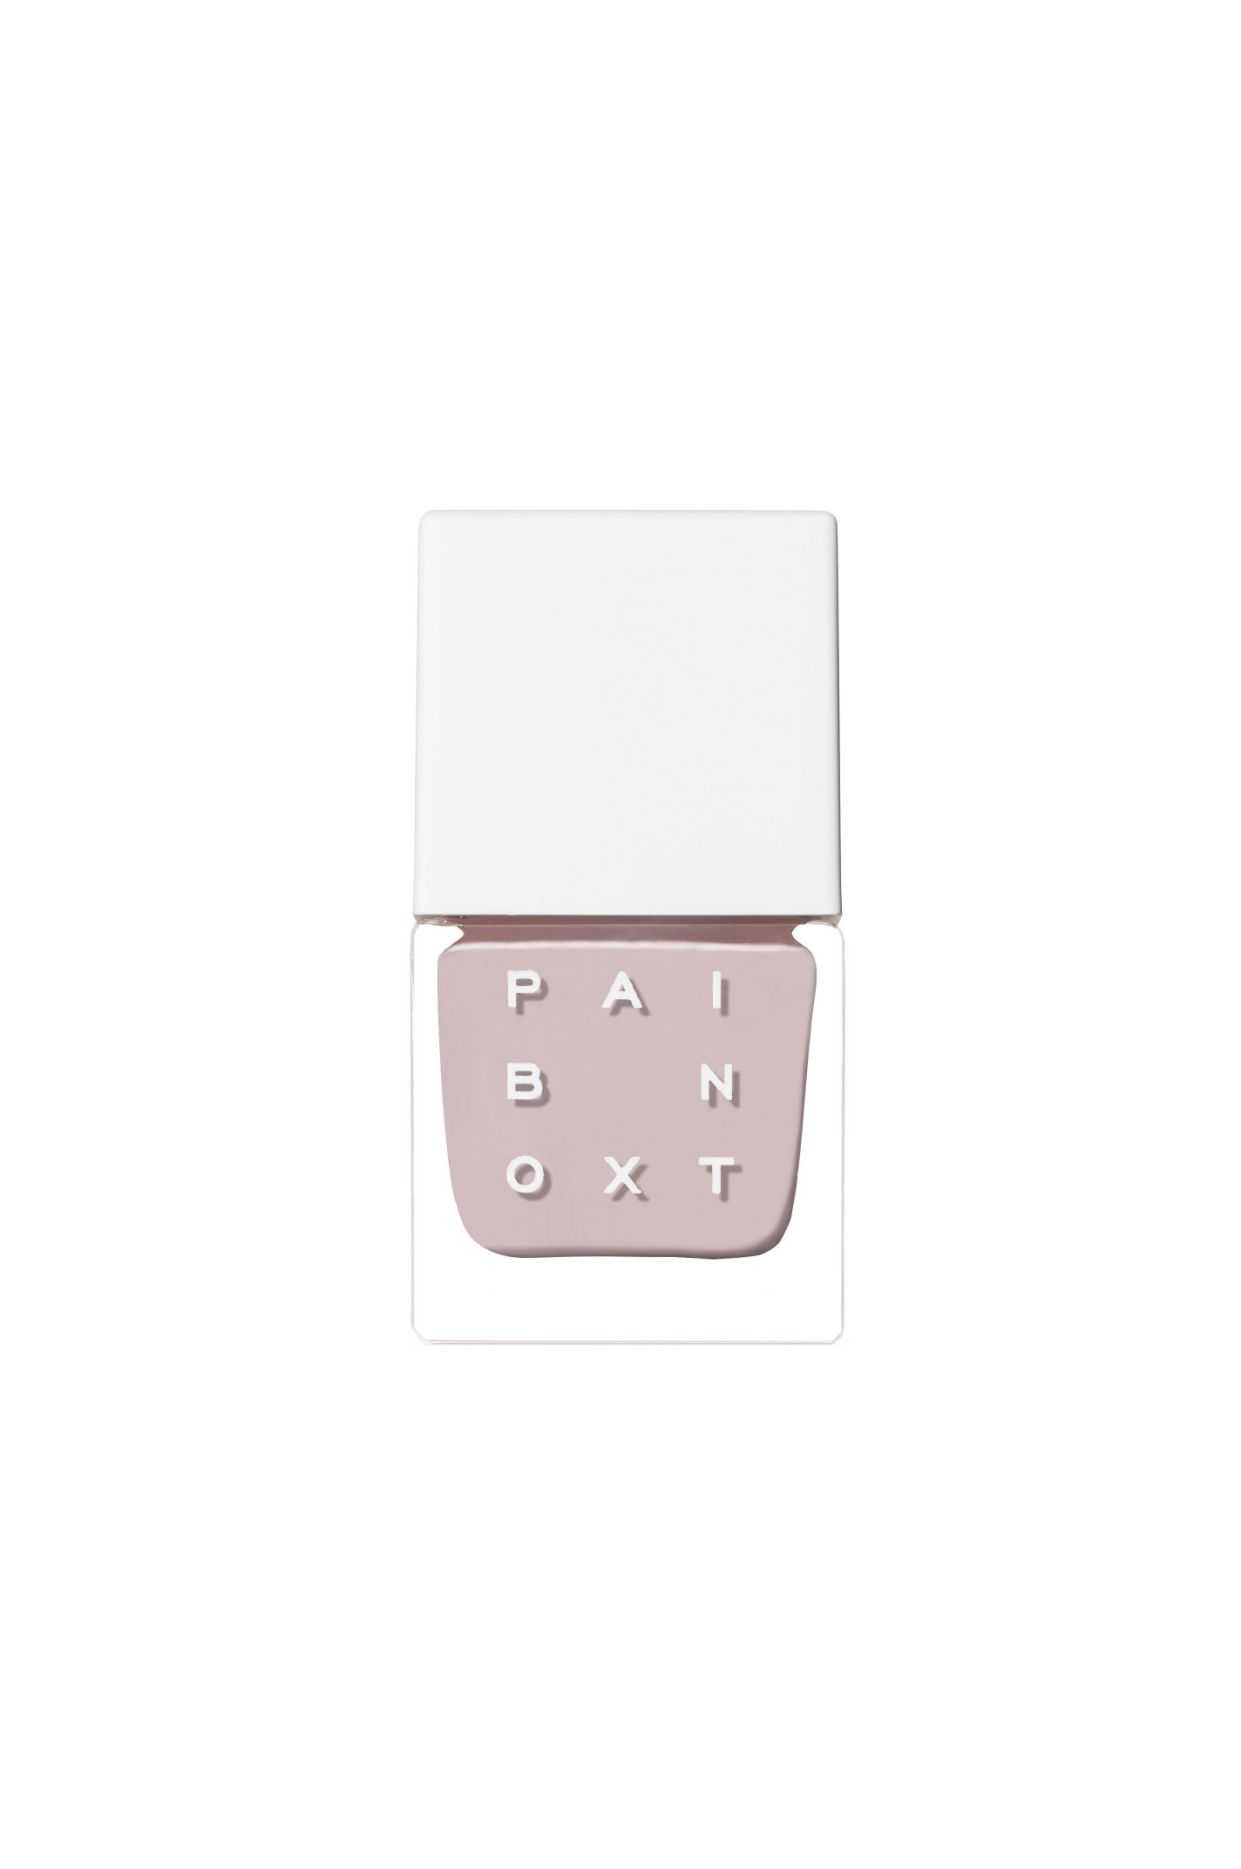 "<h3>Paintbox Nail Polish in Like <strong>Mystery</strong></h3> <p>The faint undertone of mauve pink in this neutral sand shade gives the polish a uniquely warm, almost milky effect that's flattering across all skin tones.</p> <br> <br> <strong>Paintbox</strong> Nail Lacquer in Like Mystery, $22, available at <a href=""https://paint-box.com/products/nail-lacquer-like-mystery"" rel=""nofollow noopener"" target=""_blank"" data-ylk=""slk:Paintbox"" class=""link rapid-noclick-resp"">Paintbox</a>"